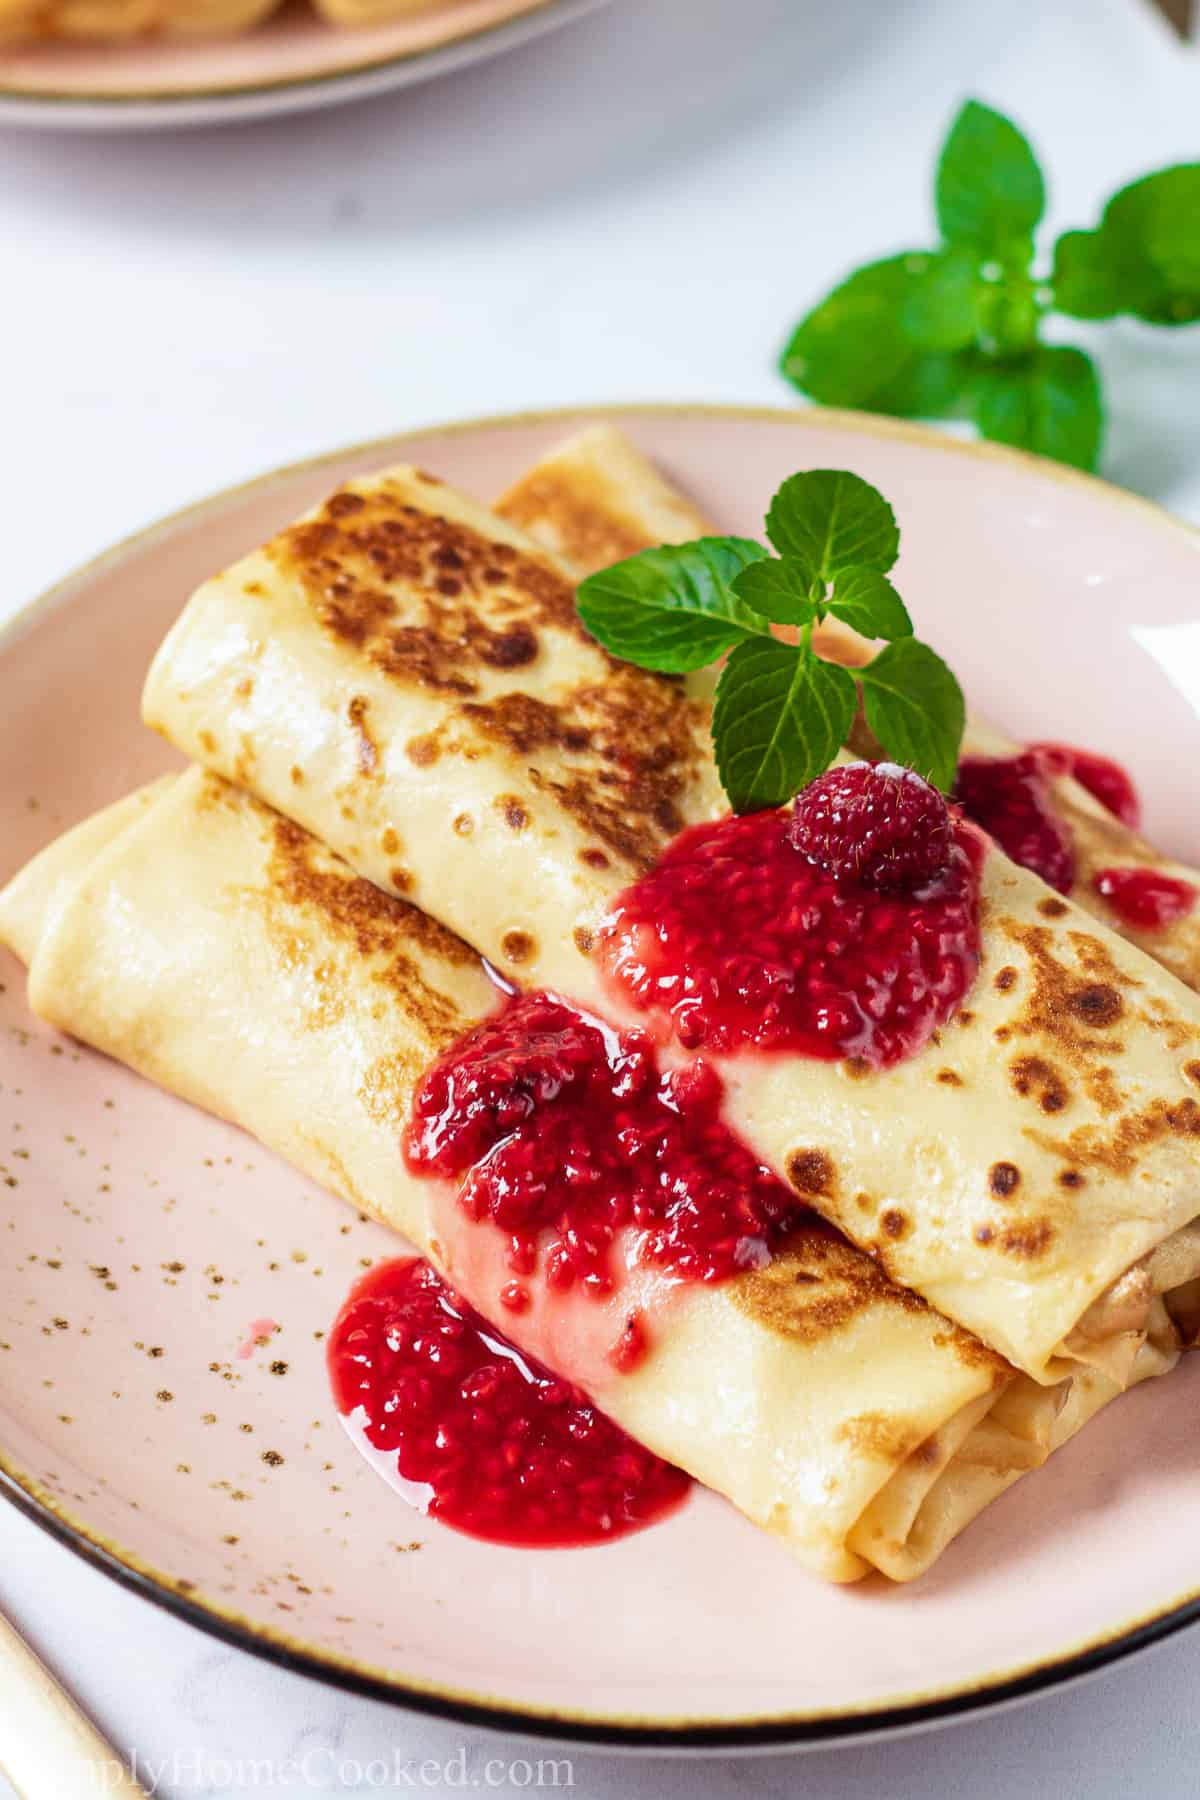 Close up of Cheese Blintz on a plate with berry sauce and garnished on top.